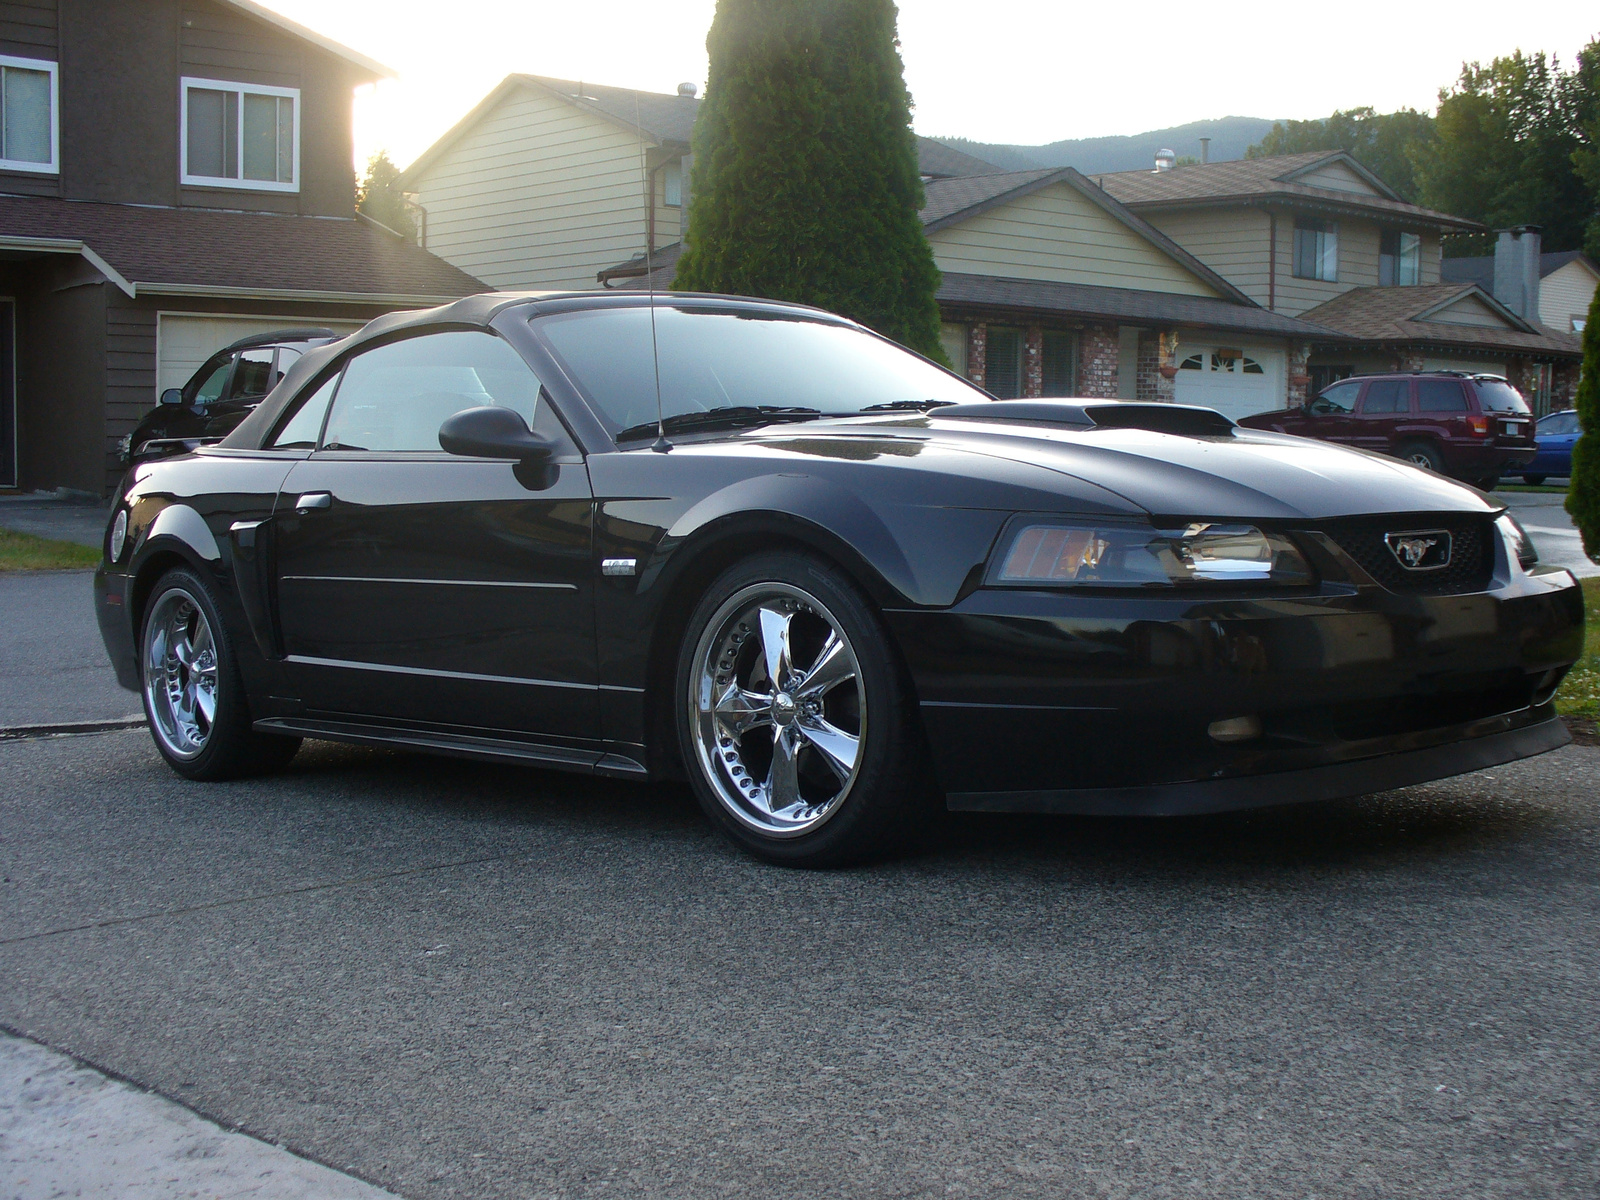 08 ford mustang gt specs car autos gallery. Black Bedroom Furniture Sets. Home Design Ideas